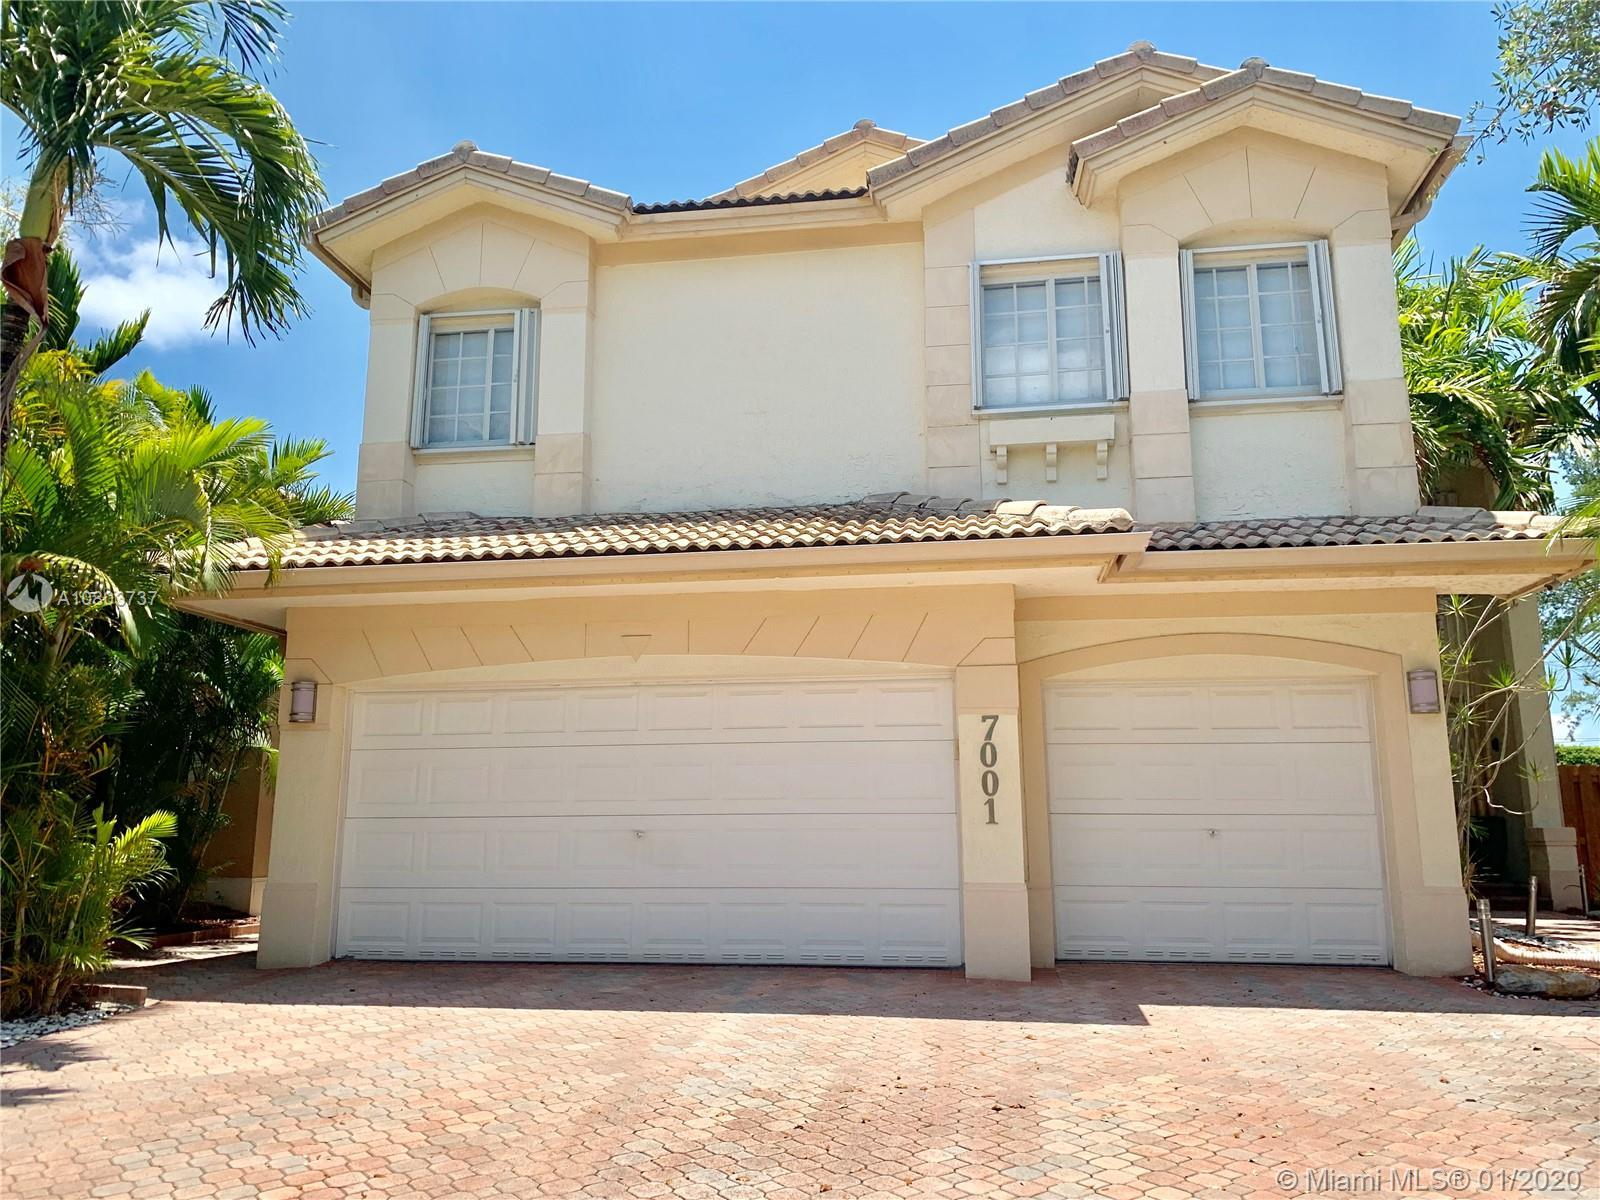 BEAUTIFUL SINGLE FAMILY HOME AT THE PRESTIGIOUS COMMUNITY AT DORAL ISLES – ST CROIX. REMODELED  5 BE